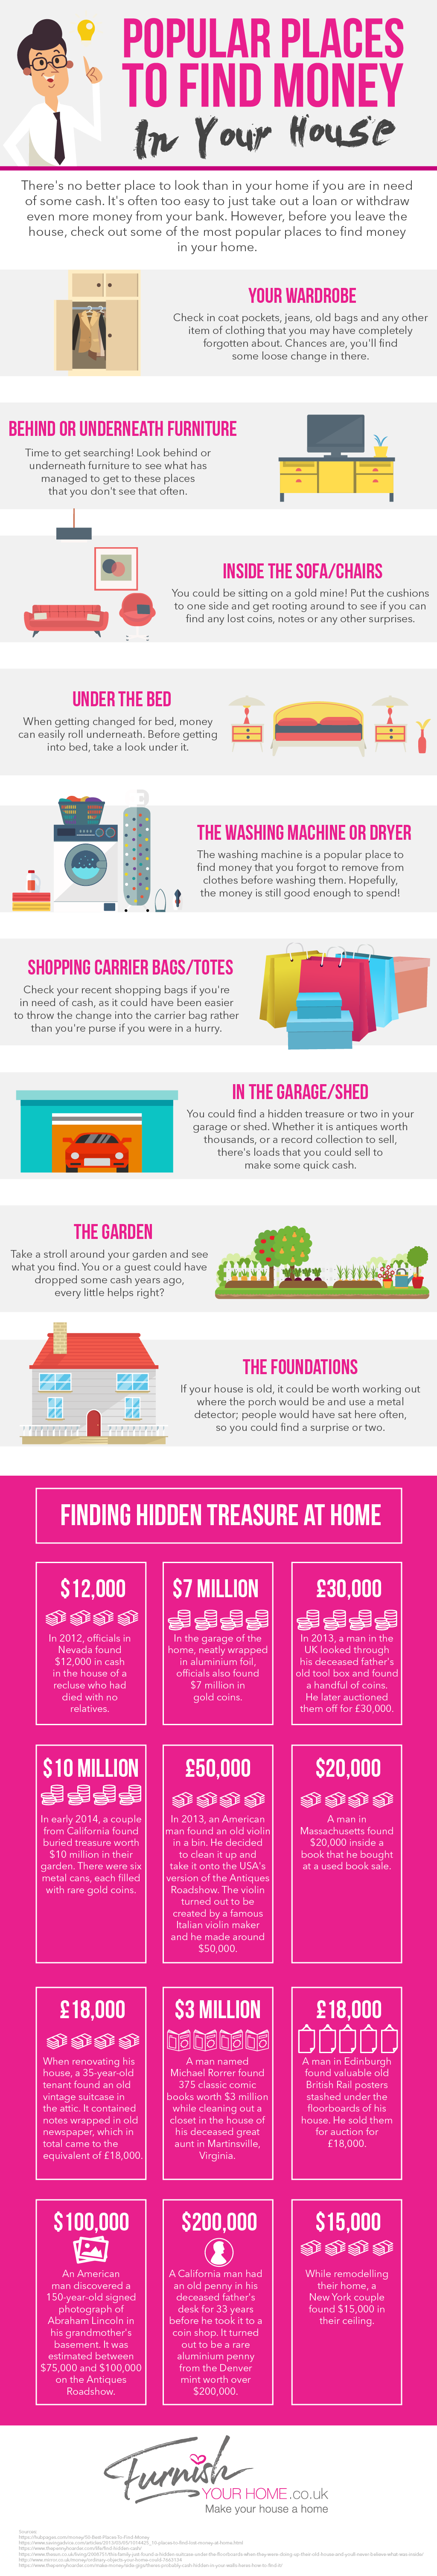 popular places to find money in your house infographic